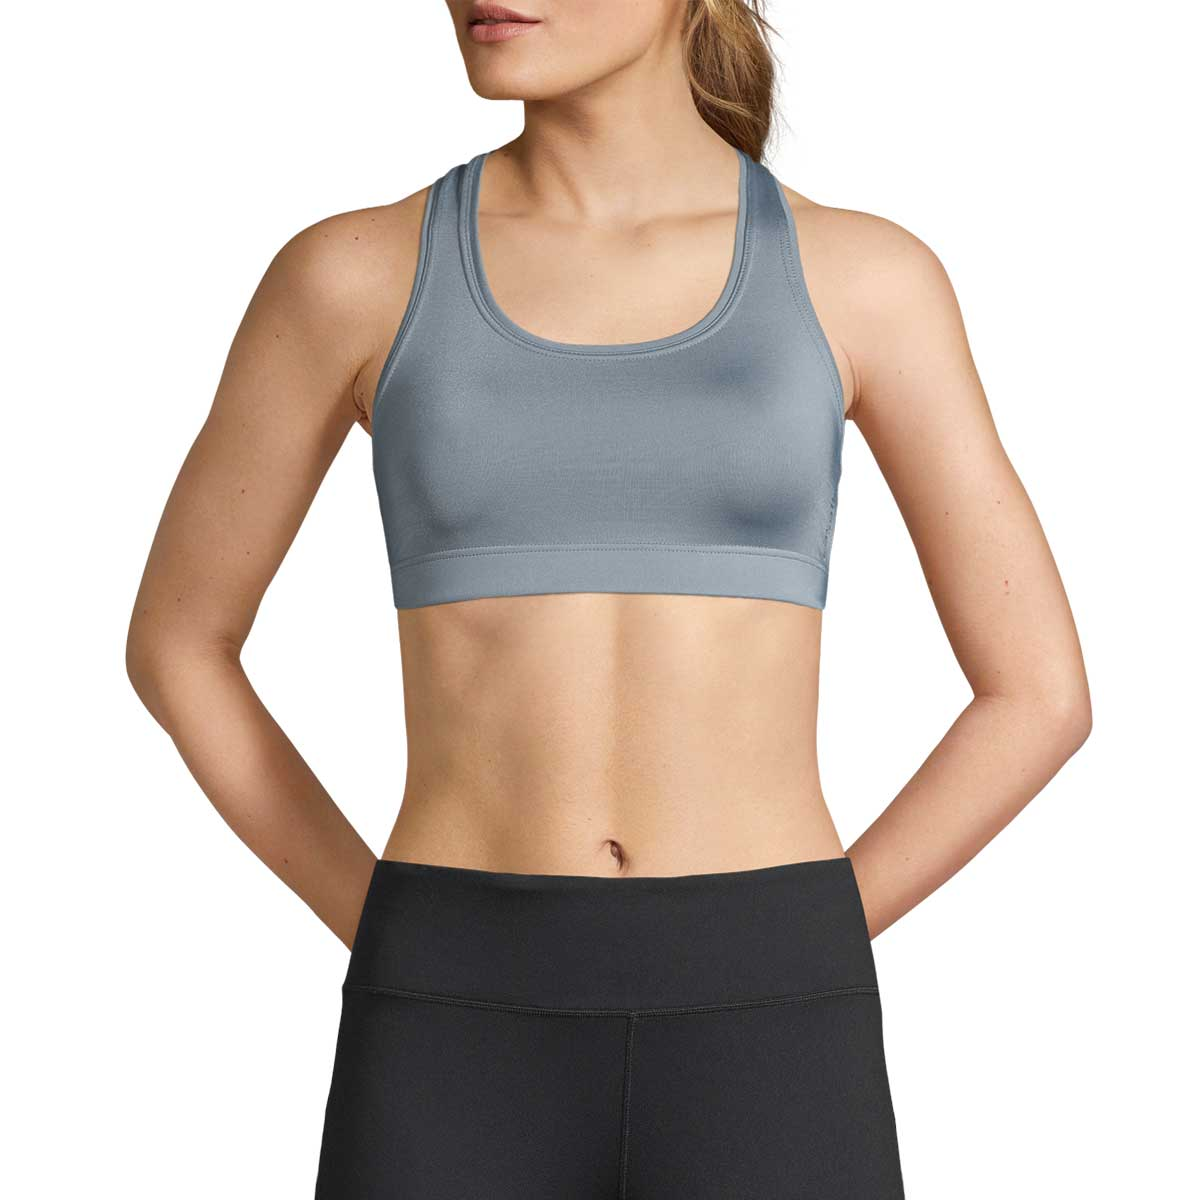 Casall Iconic Sports Bra C/D-cup - Vorne